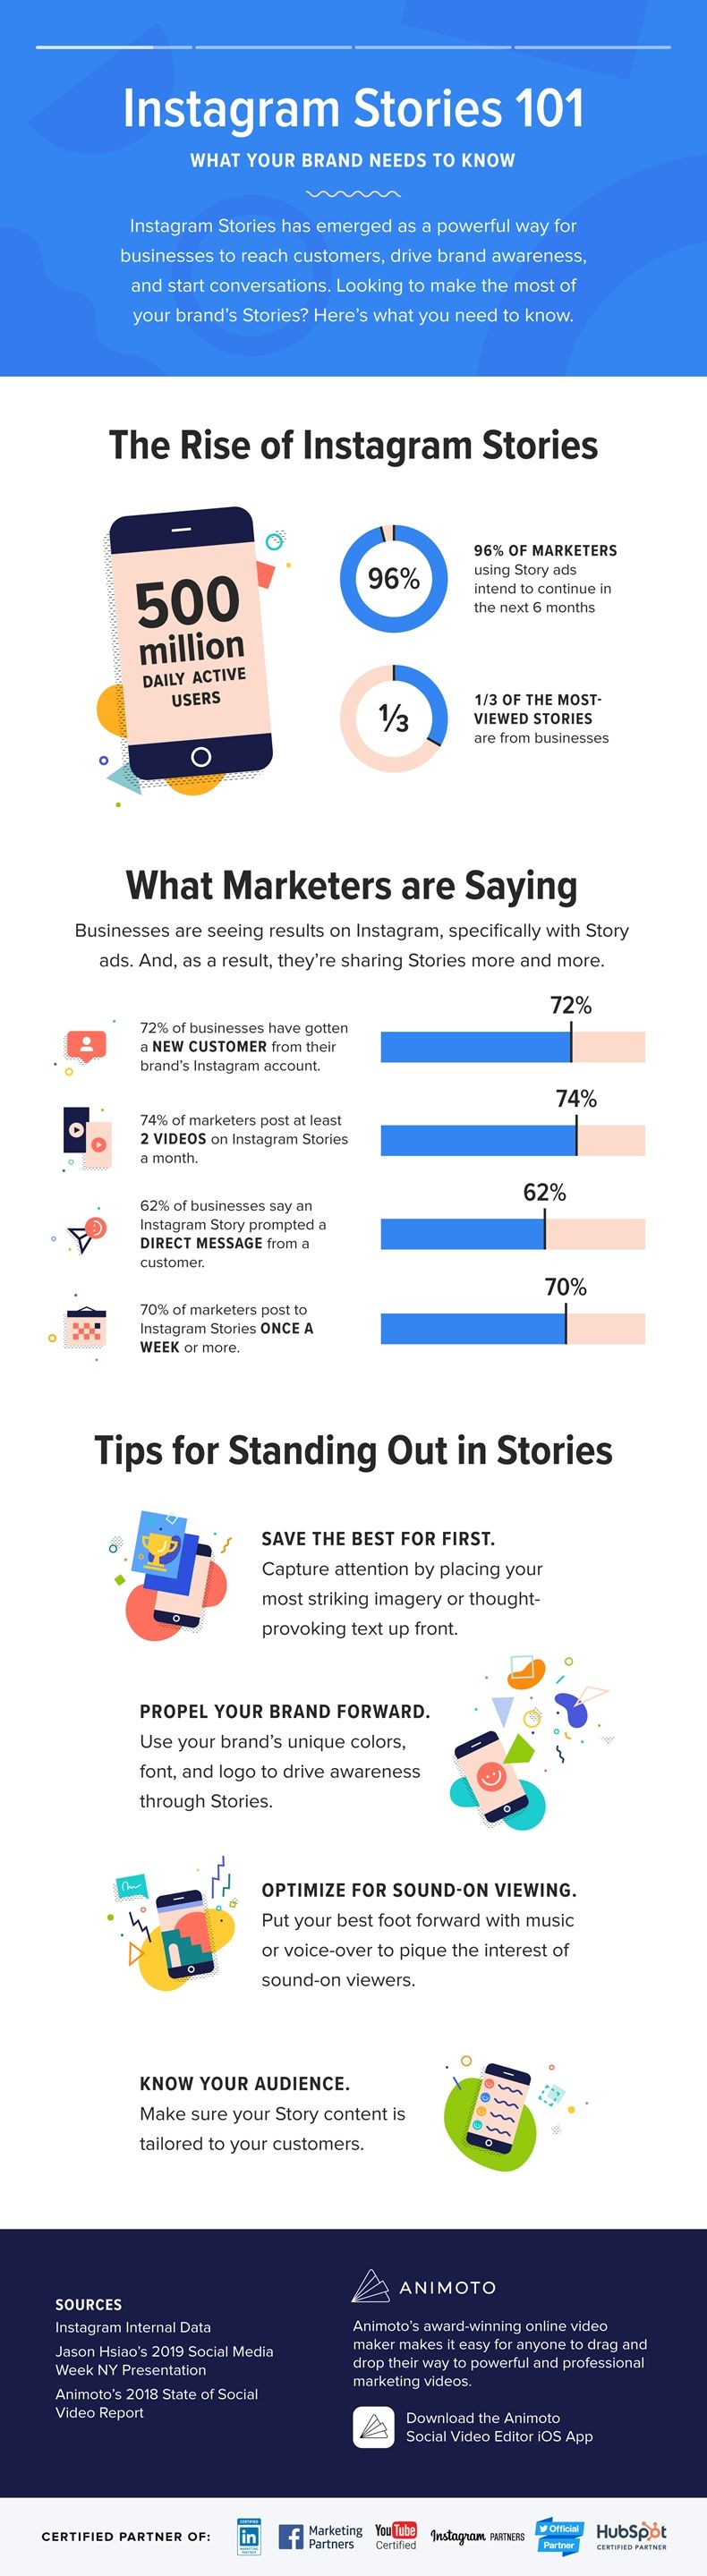 Instagram Stories: What You Need to Know About [Infographic]